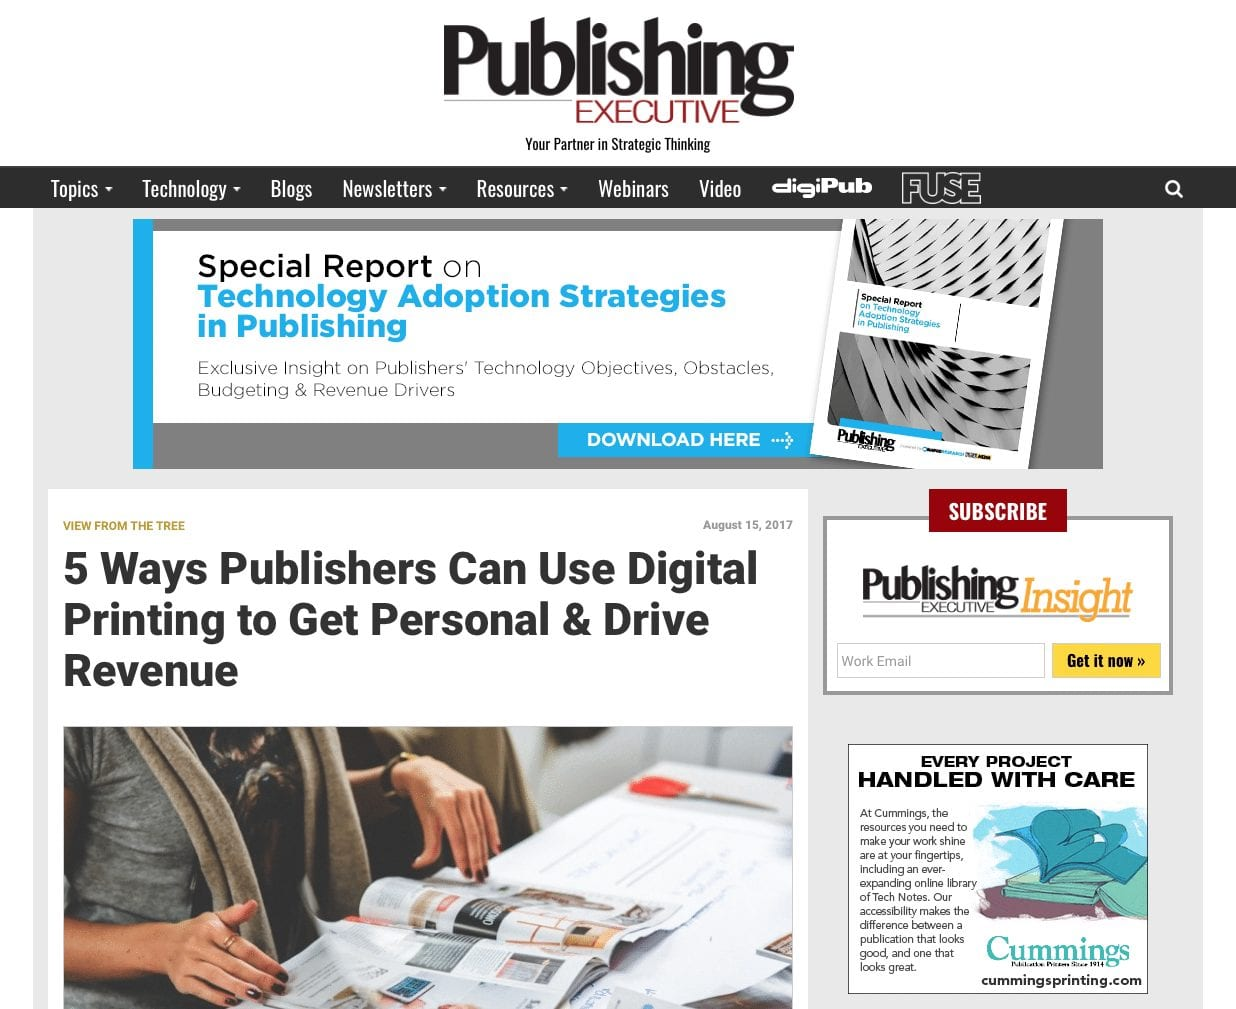 """, """"It's simple psychology"""": One startup's tactics for producing better online marketing and sales results – Interview with Paul Kostial, CEO, Audience Innovation®"""